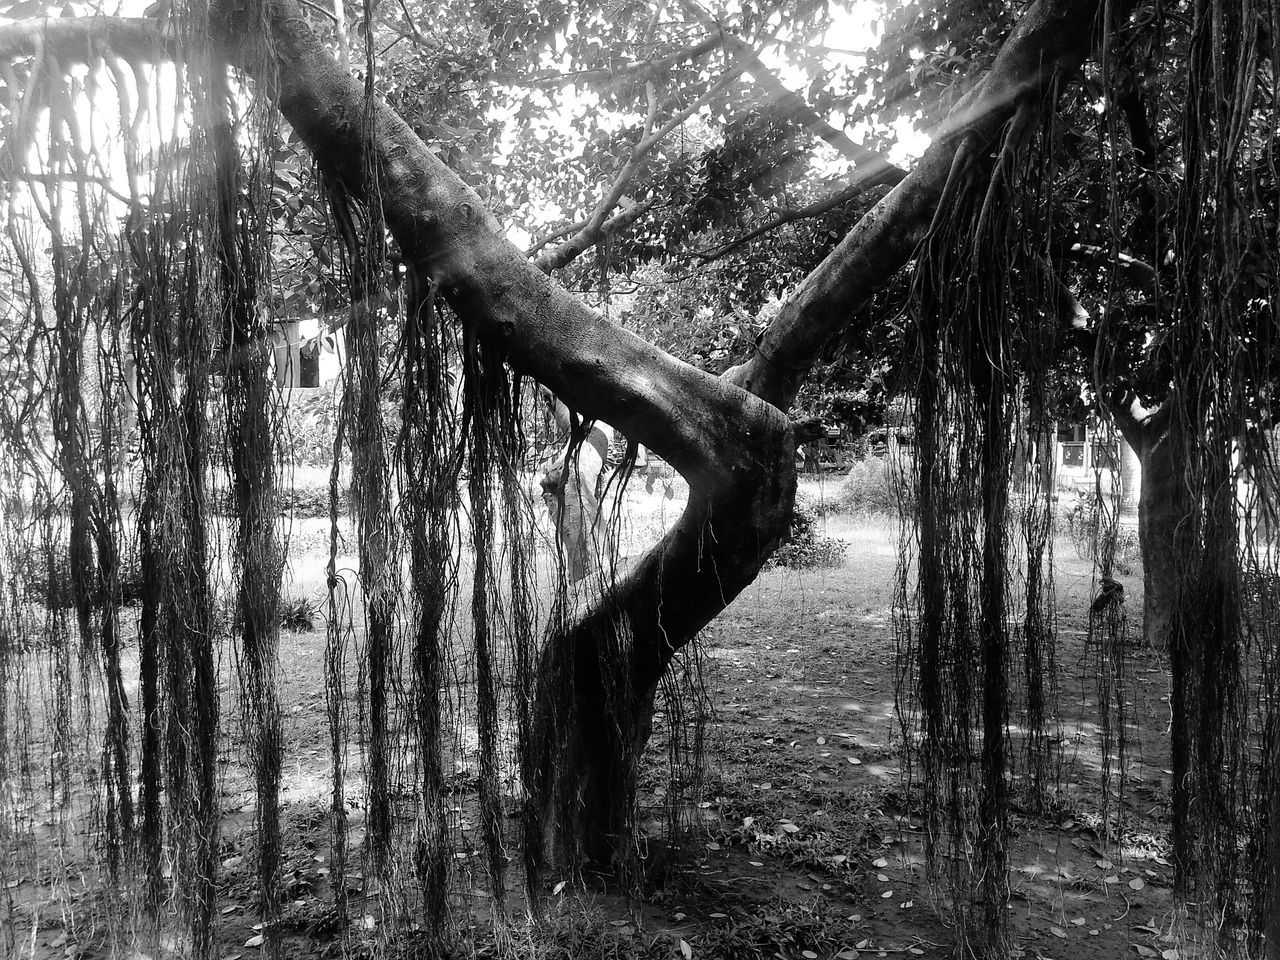 tree, tree trunk, nature, forest, day, tranquility, branch, outdoors, no people, beauty in nature, growth, scenics, water, rope swing, sky